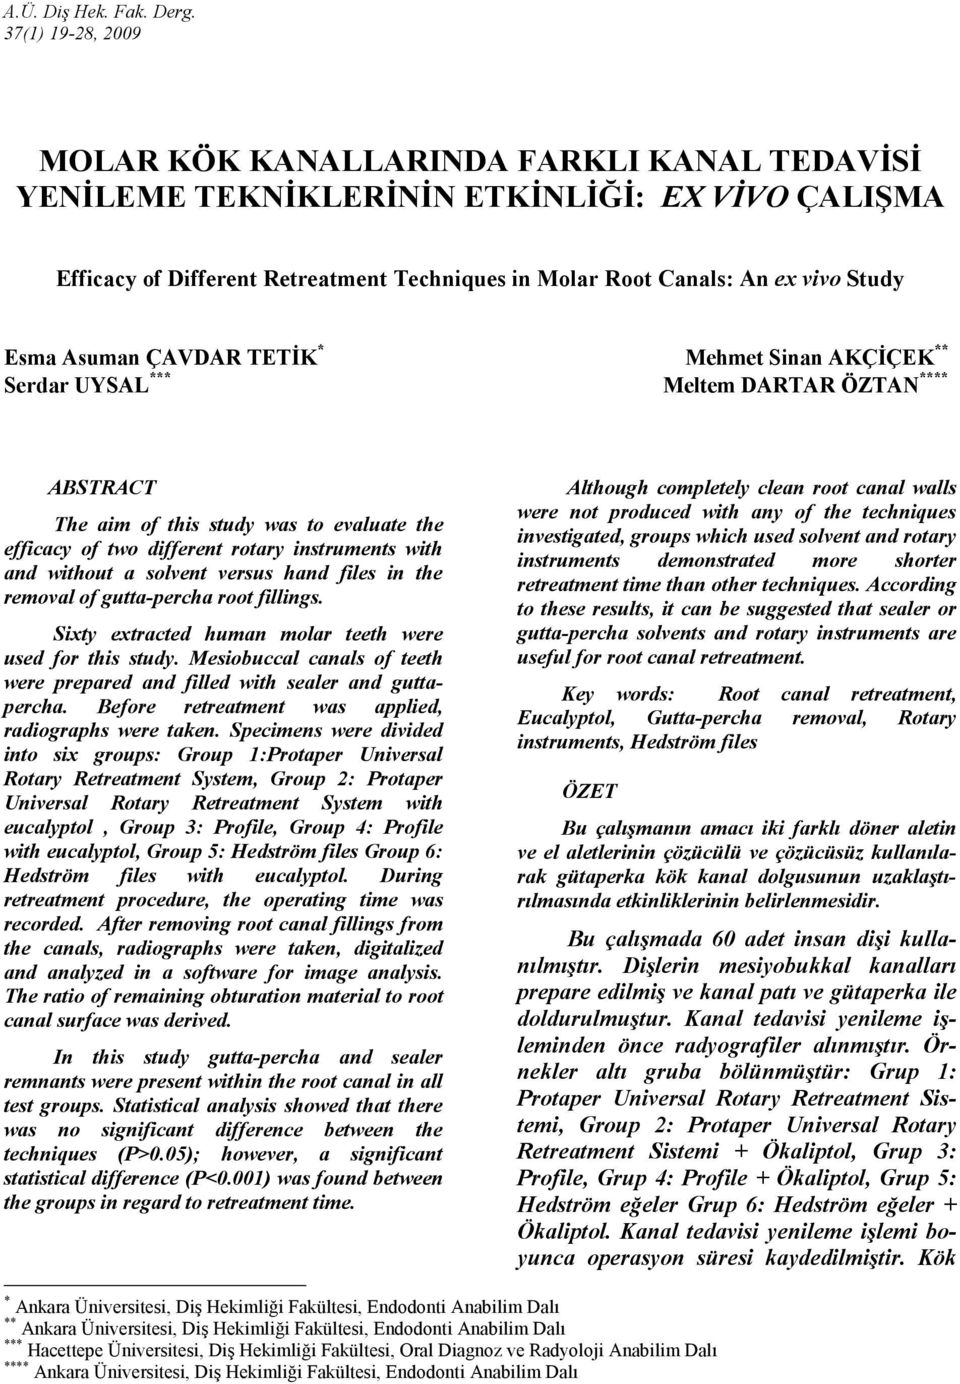 Esma Asuman ÇAVDAR TETĐK * Mehmet Sinan AKÇĐÇEK ** Serdar UYSAL *** Meltem DARTAR ÖZTAN **** ABSTRACT The aim of this study was to evaluate the efficacy of two different rotary instruments with and